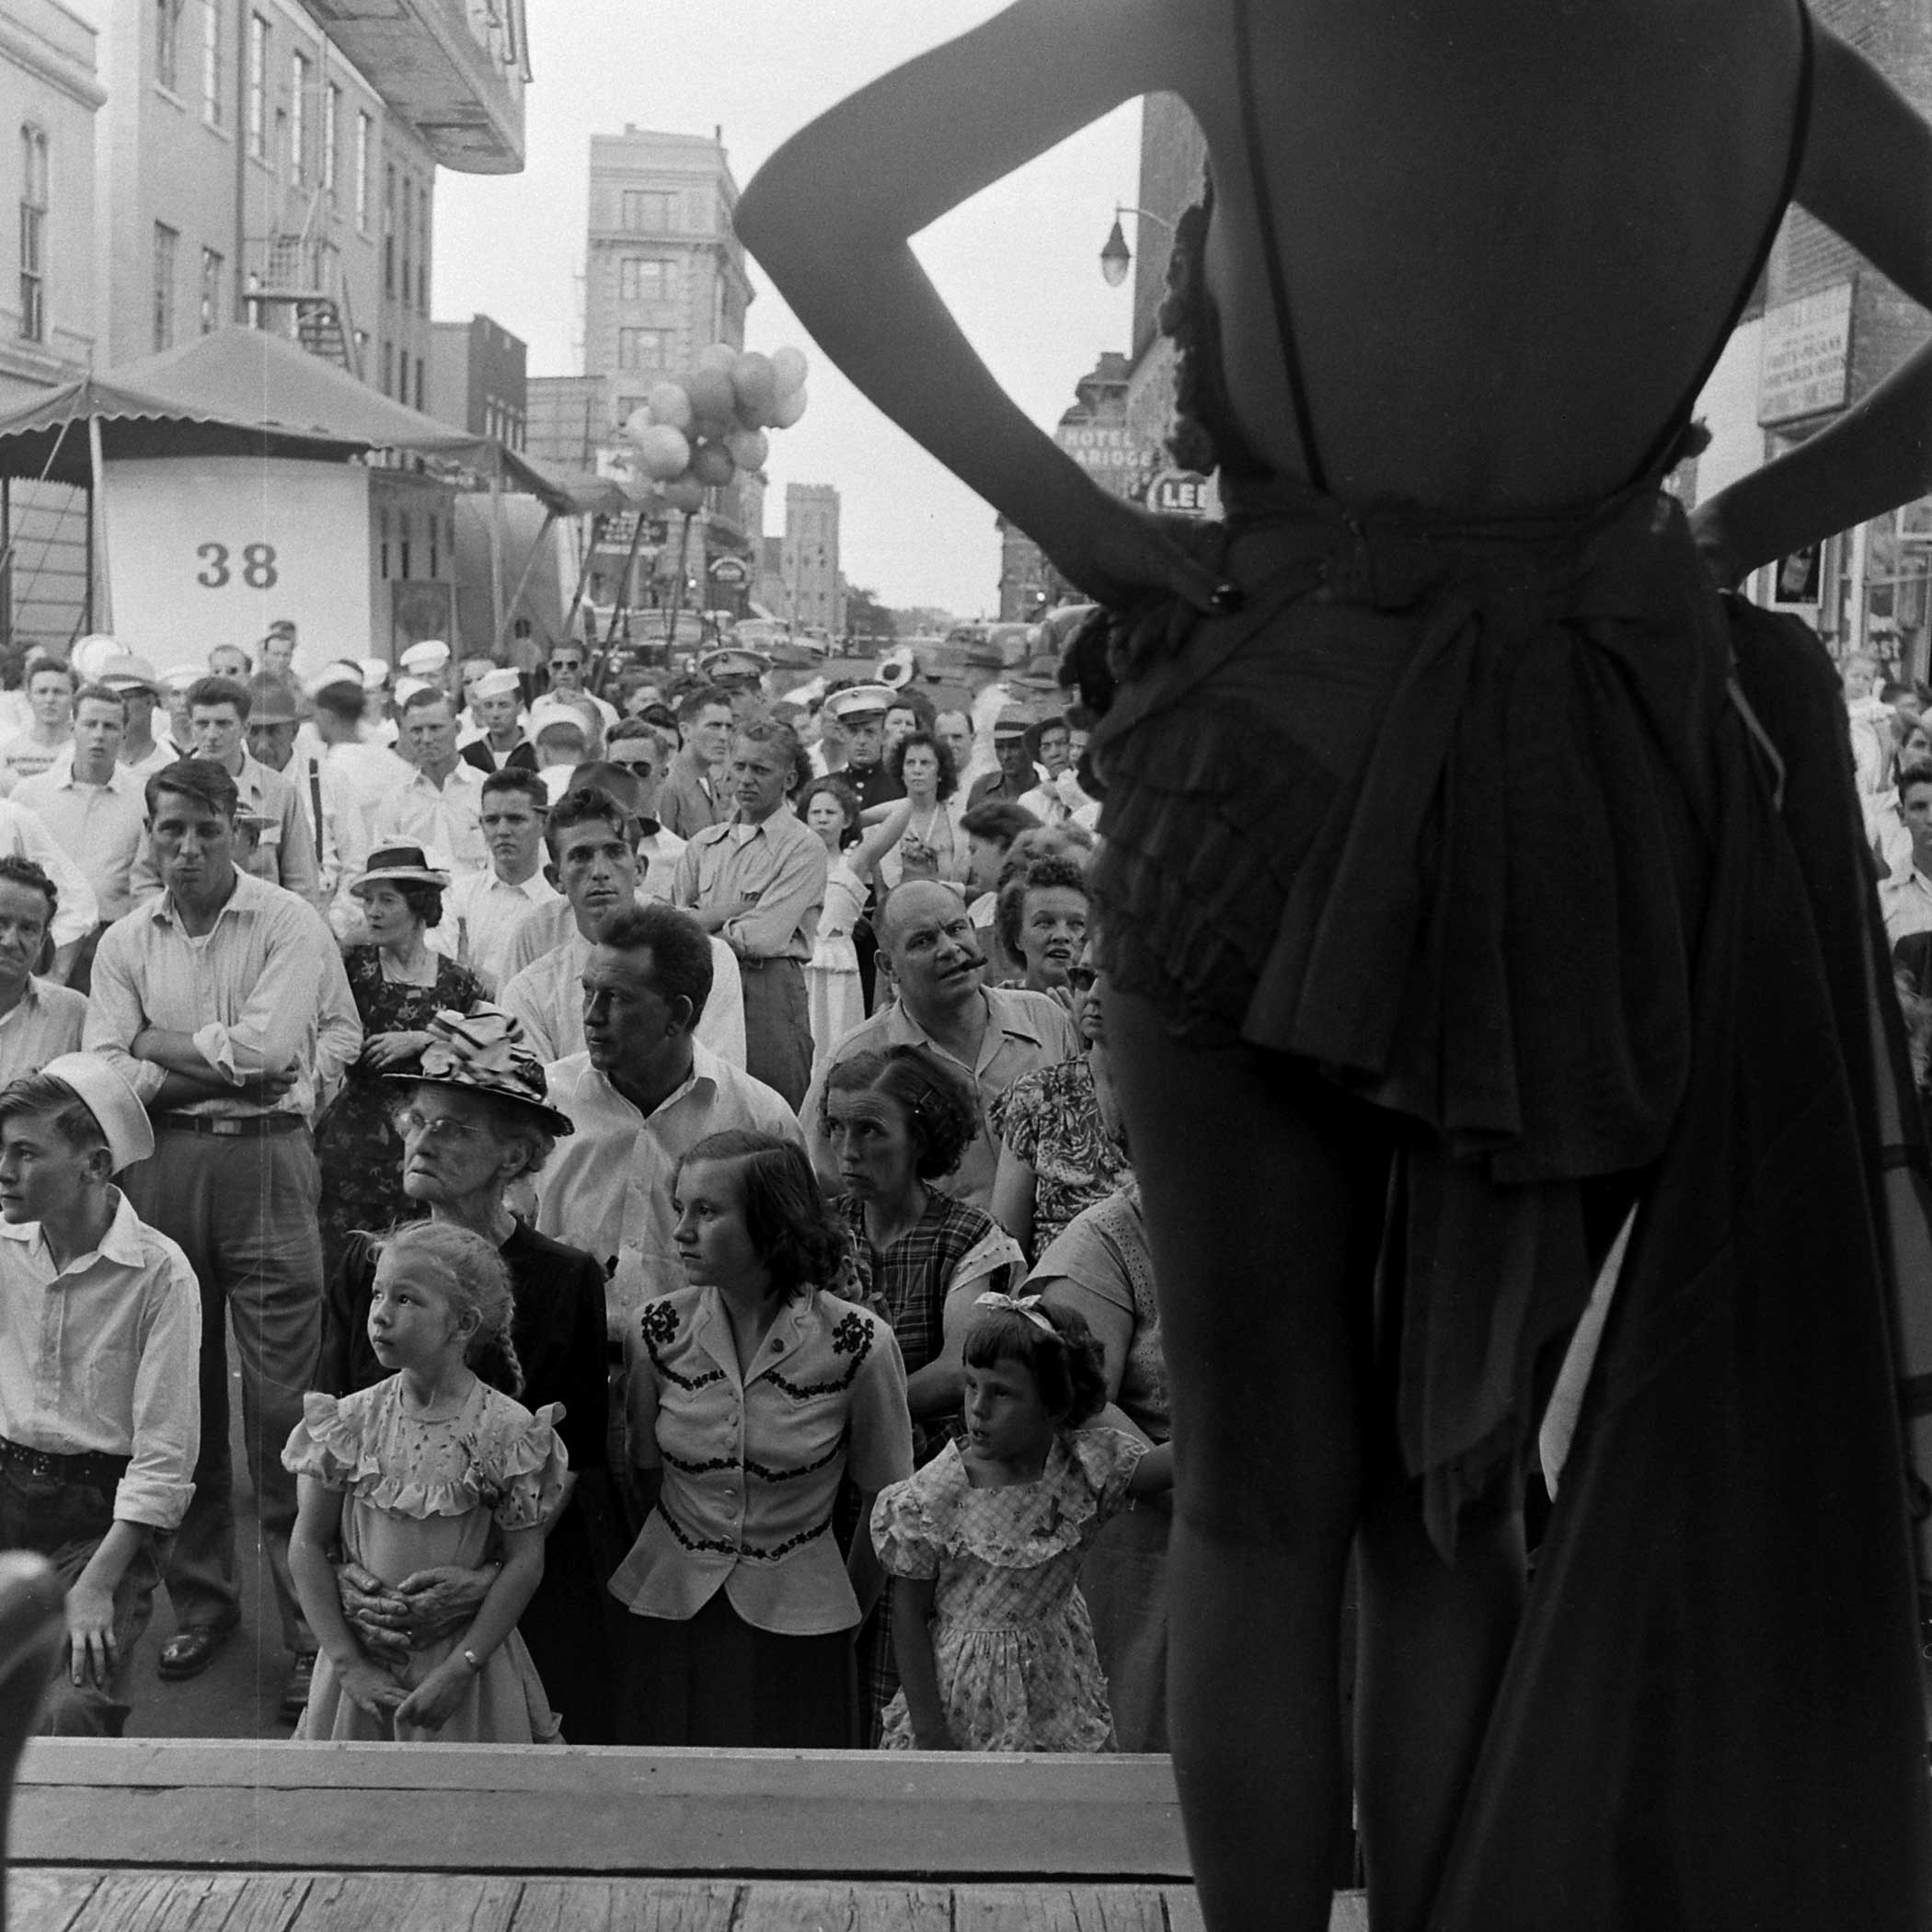 <b>Not published in LIFE.</b> Burlesque star Gypsy Rose Lee in front of a crowd in Memphis, Tenn., 1949.